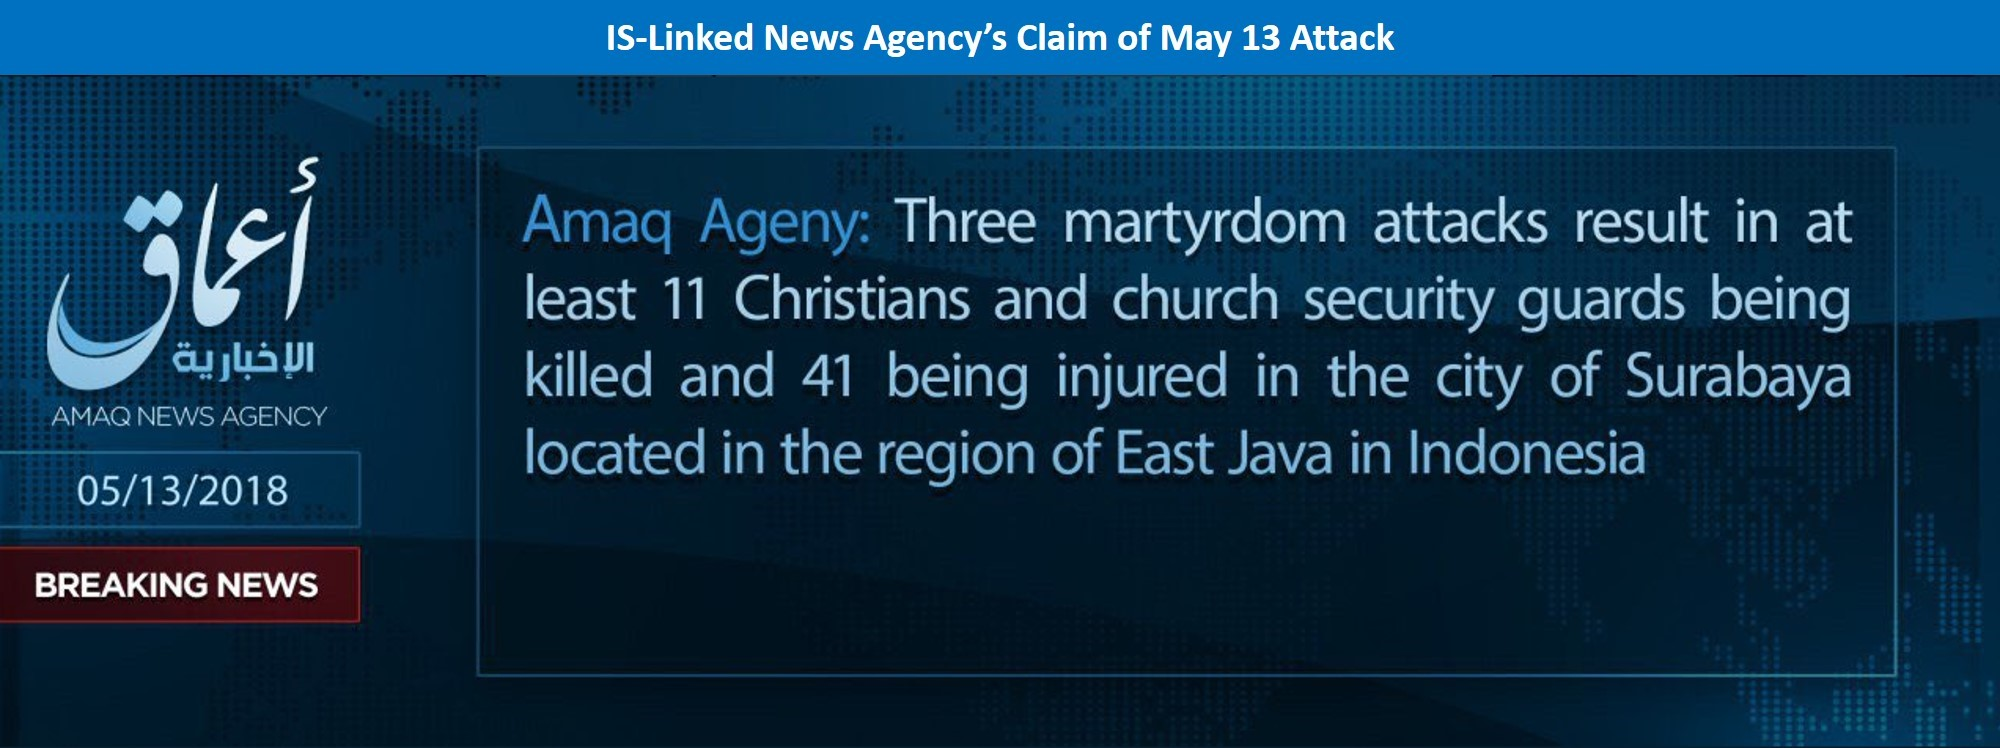 Islamic State linked news agency claims May 13,2018 attack | MAX Security